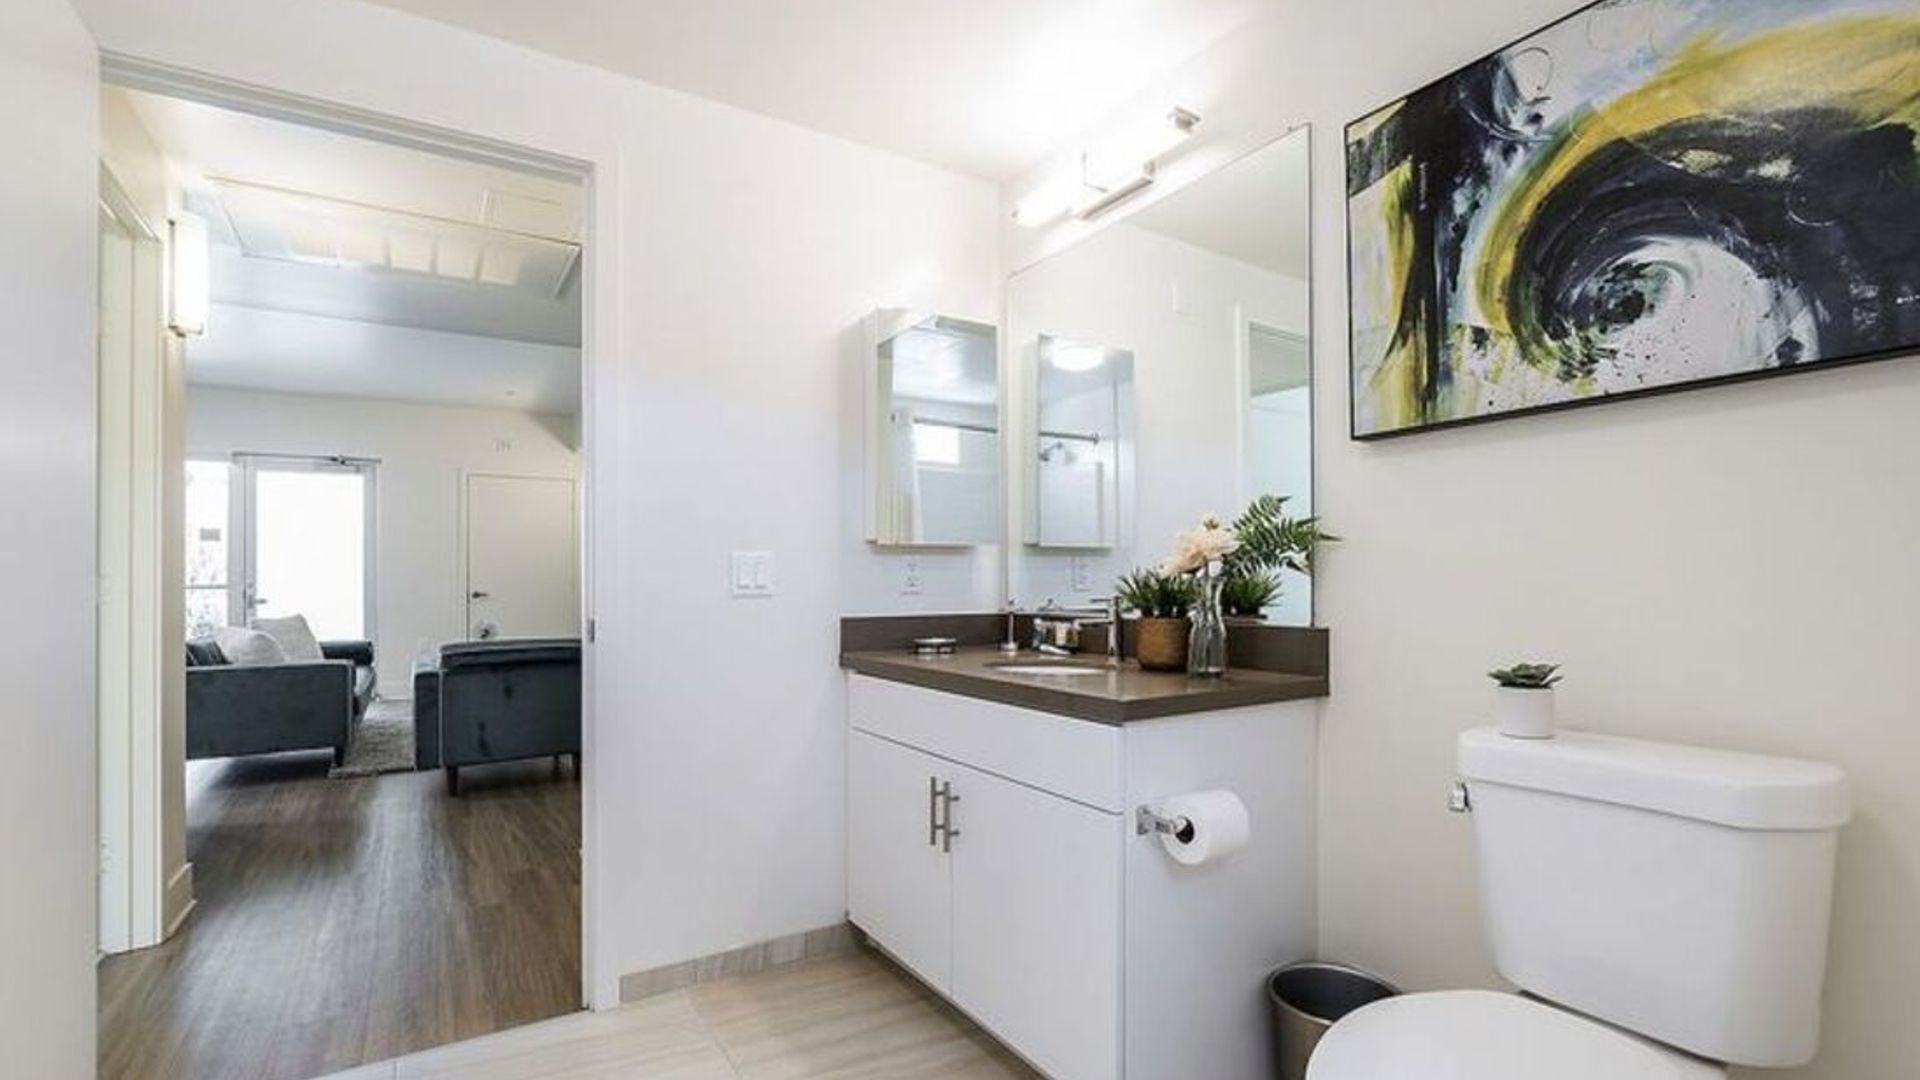 1-bed apartment at 521 West Colorado Street, Glendale, CA ...